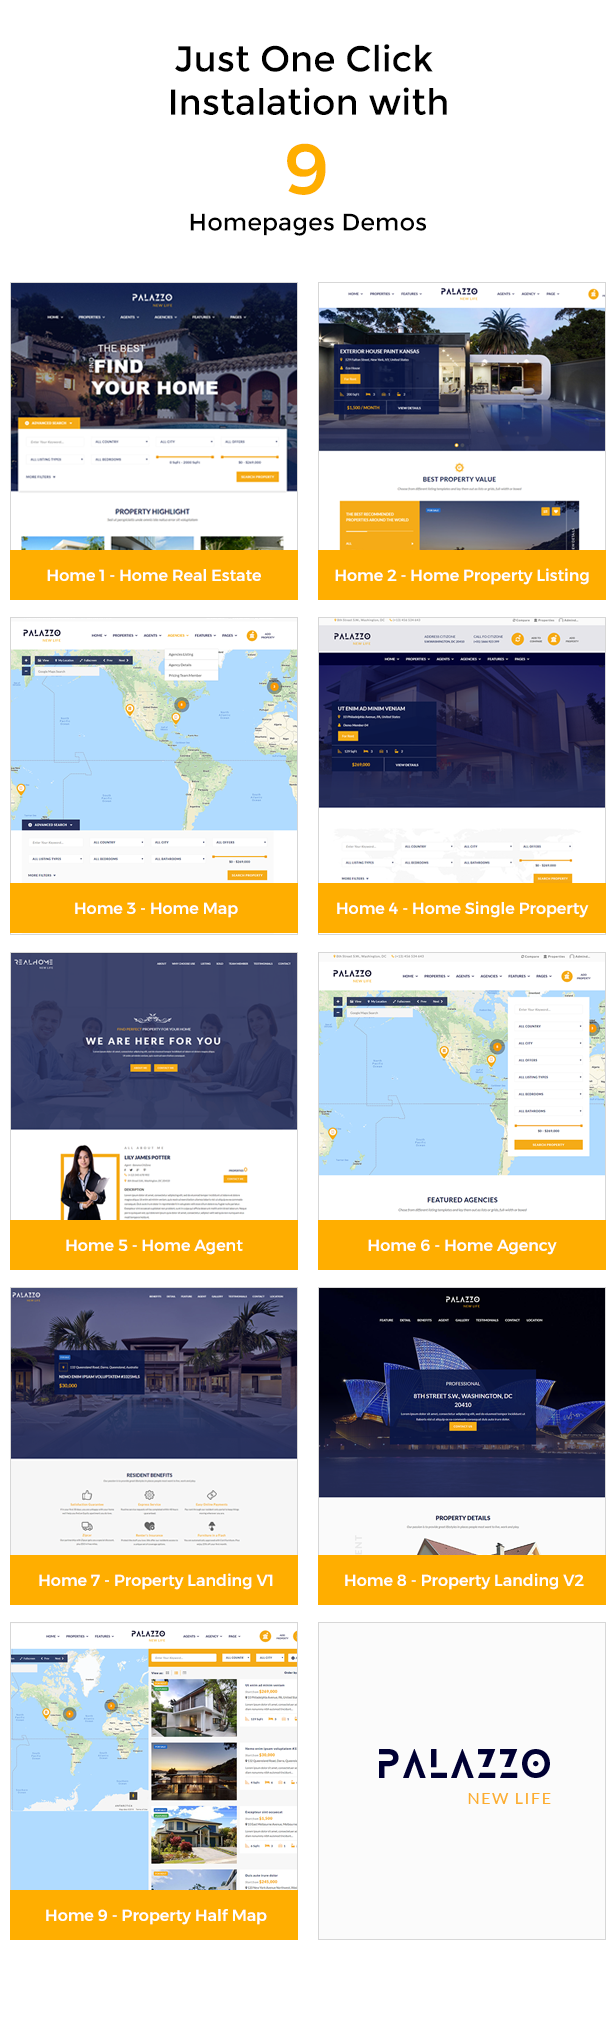 Palazzo - Real Estate WordPress Theme - 7